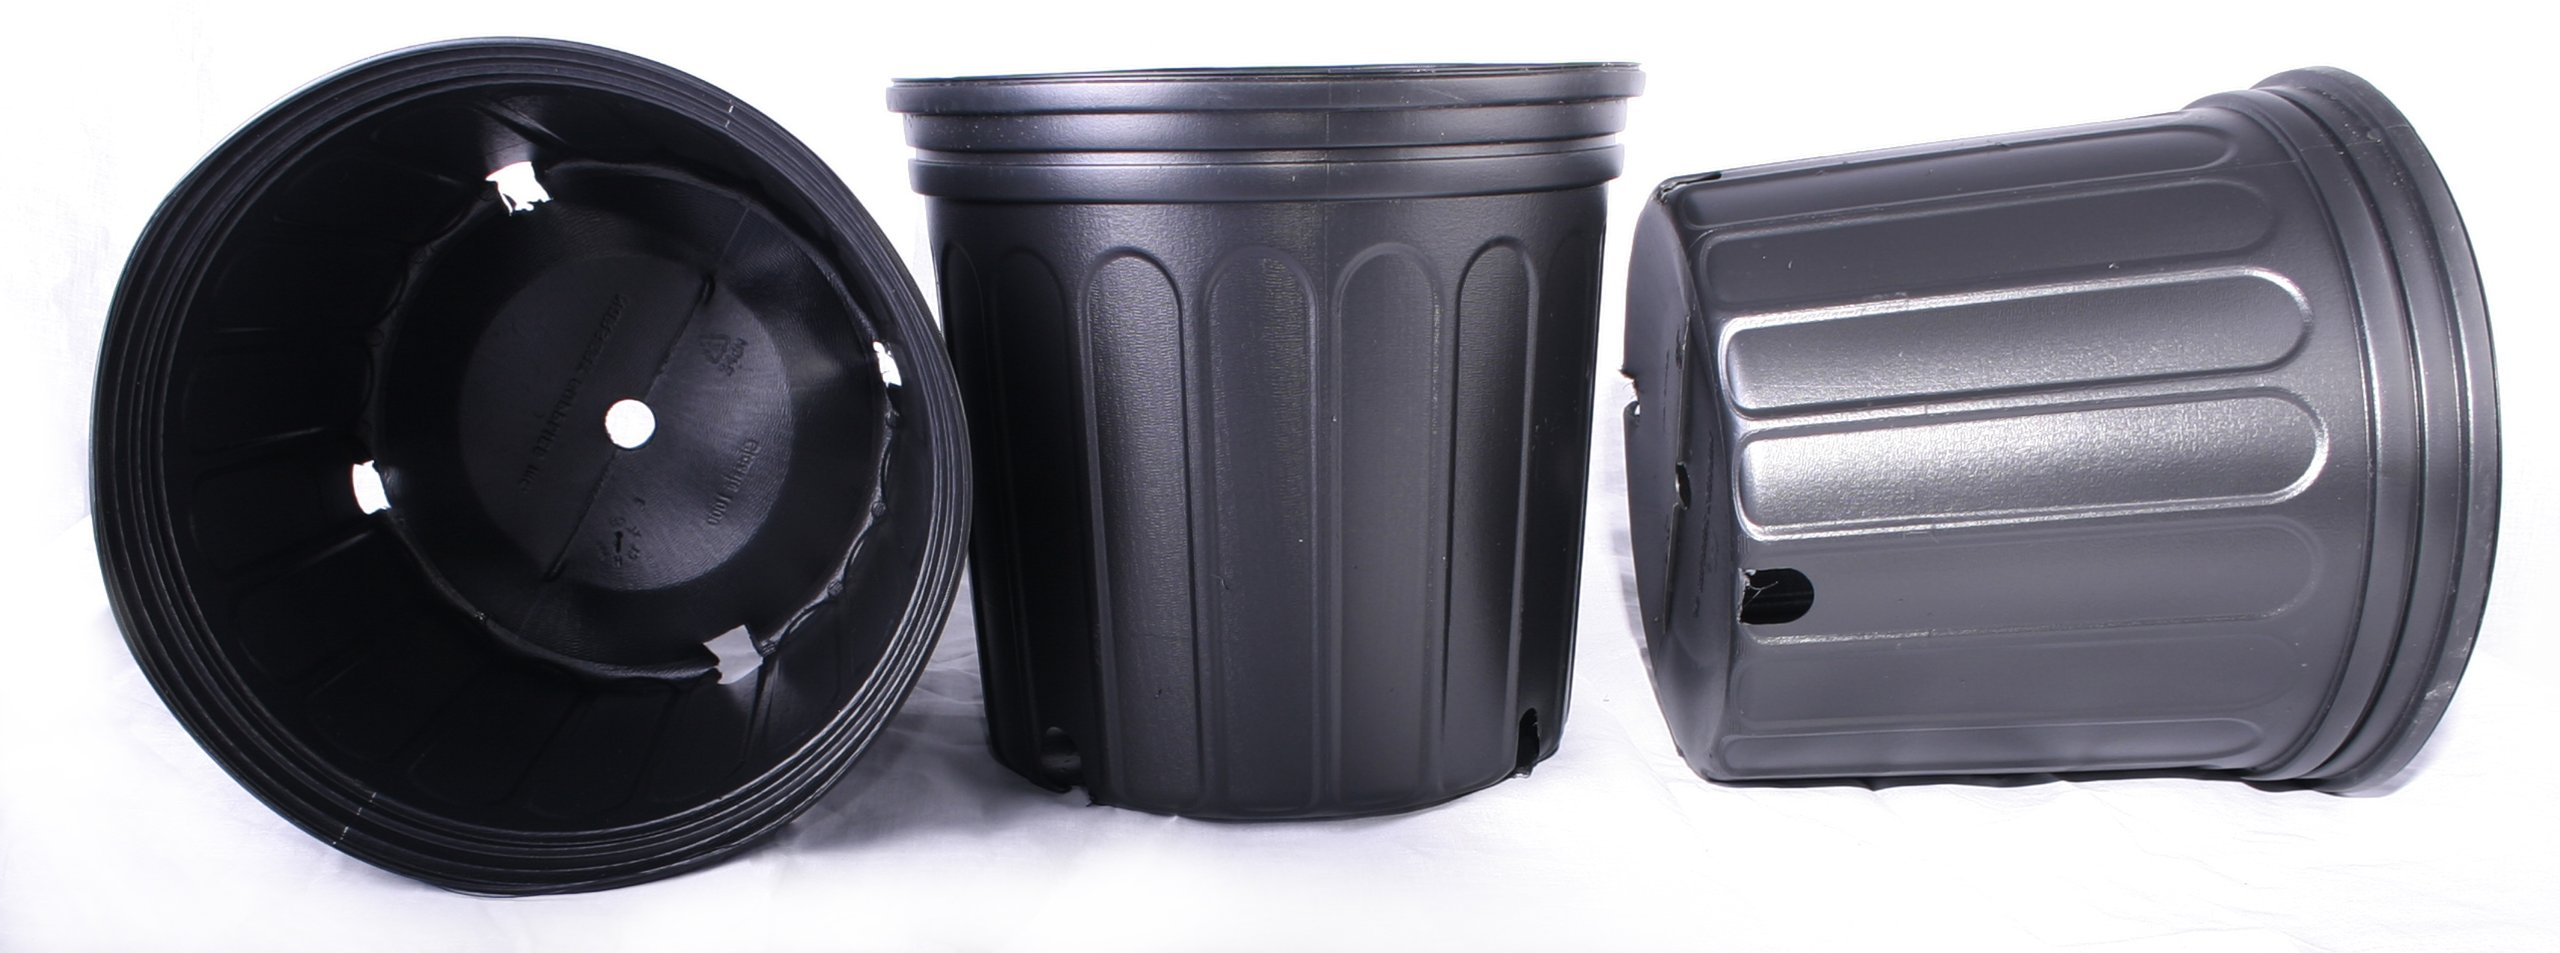 12 NEW Plastic Nursery 3 Gallon Trade POT ~ Actual Volume: 2.296 Gallons by Nursery Supplies